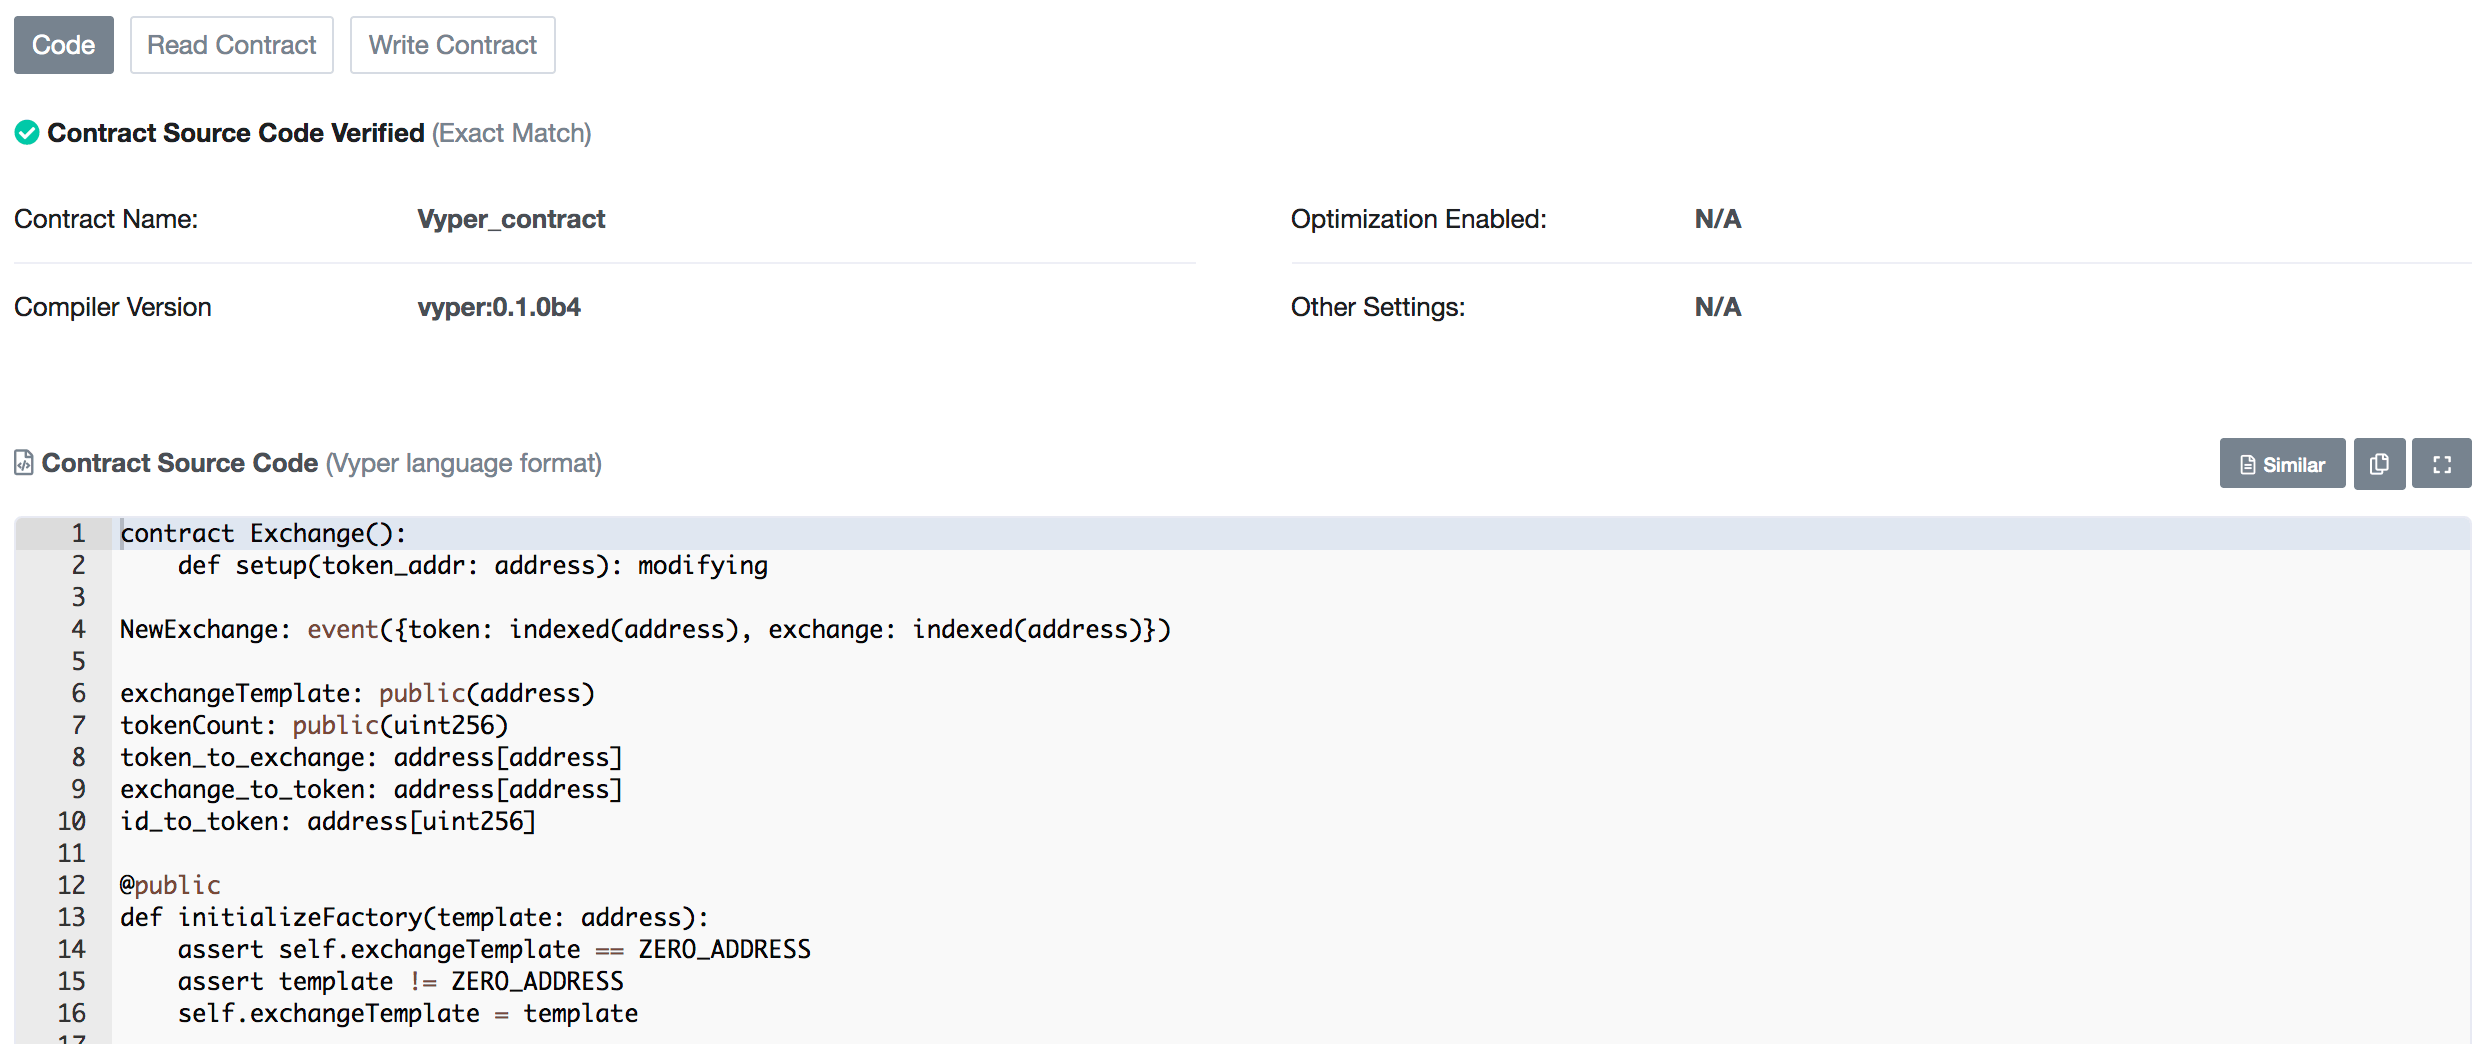 Etherscan-Verified Code